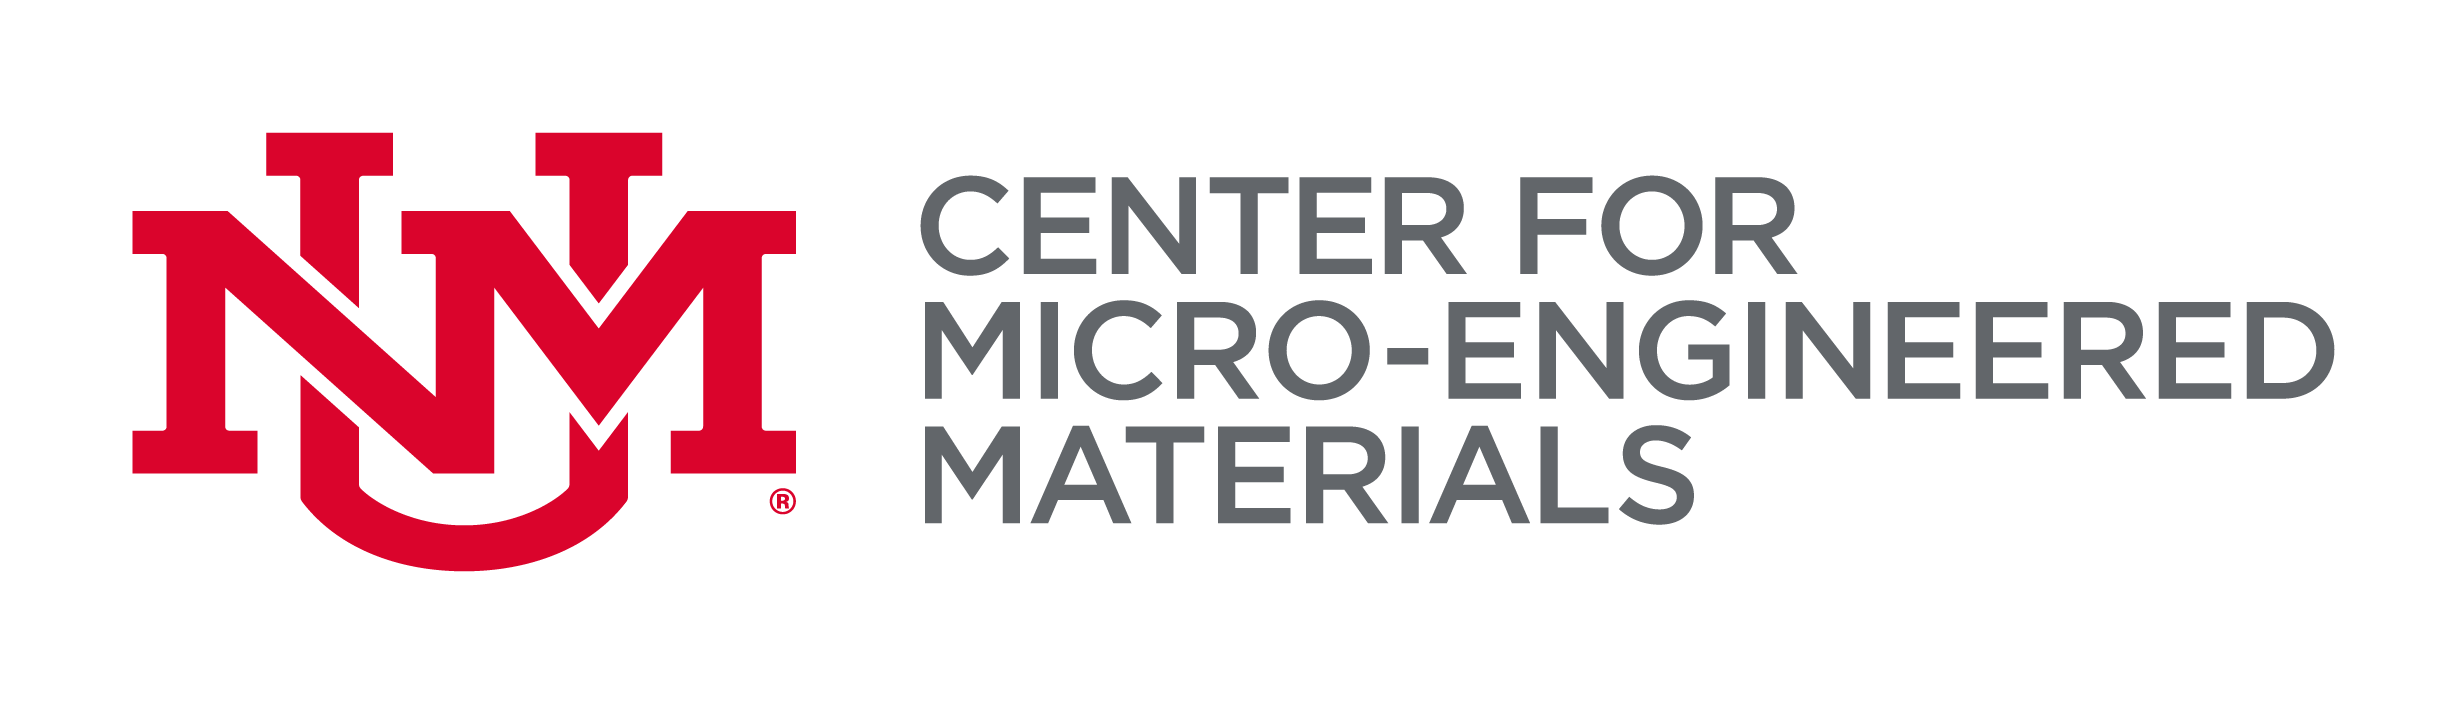 UNM Center for Micro-Engineered Materials